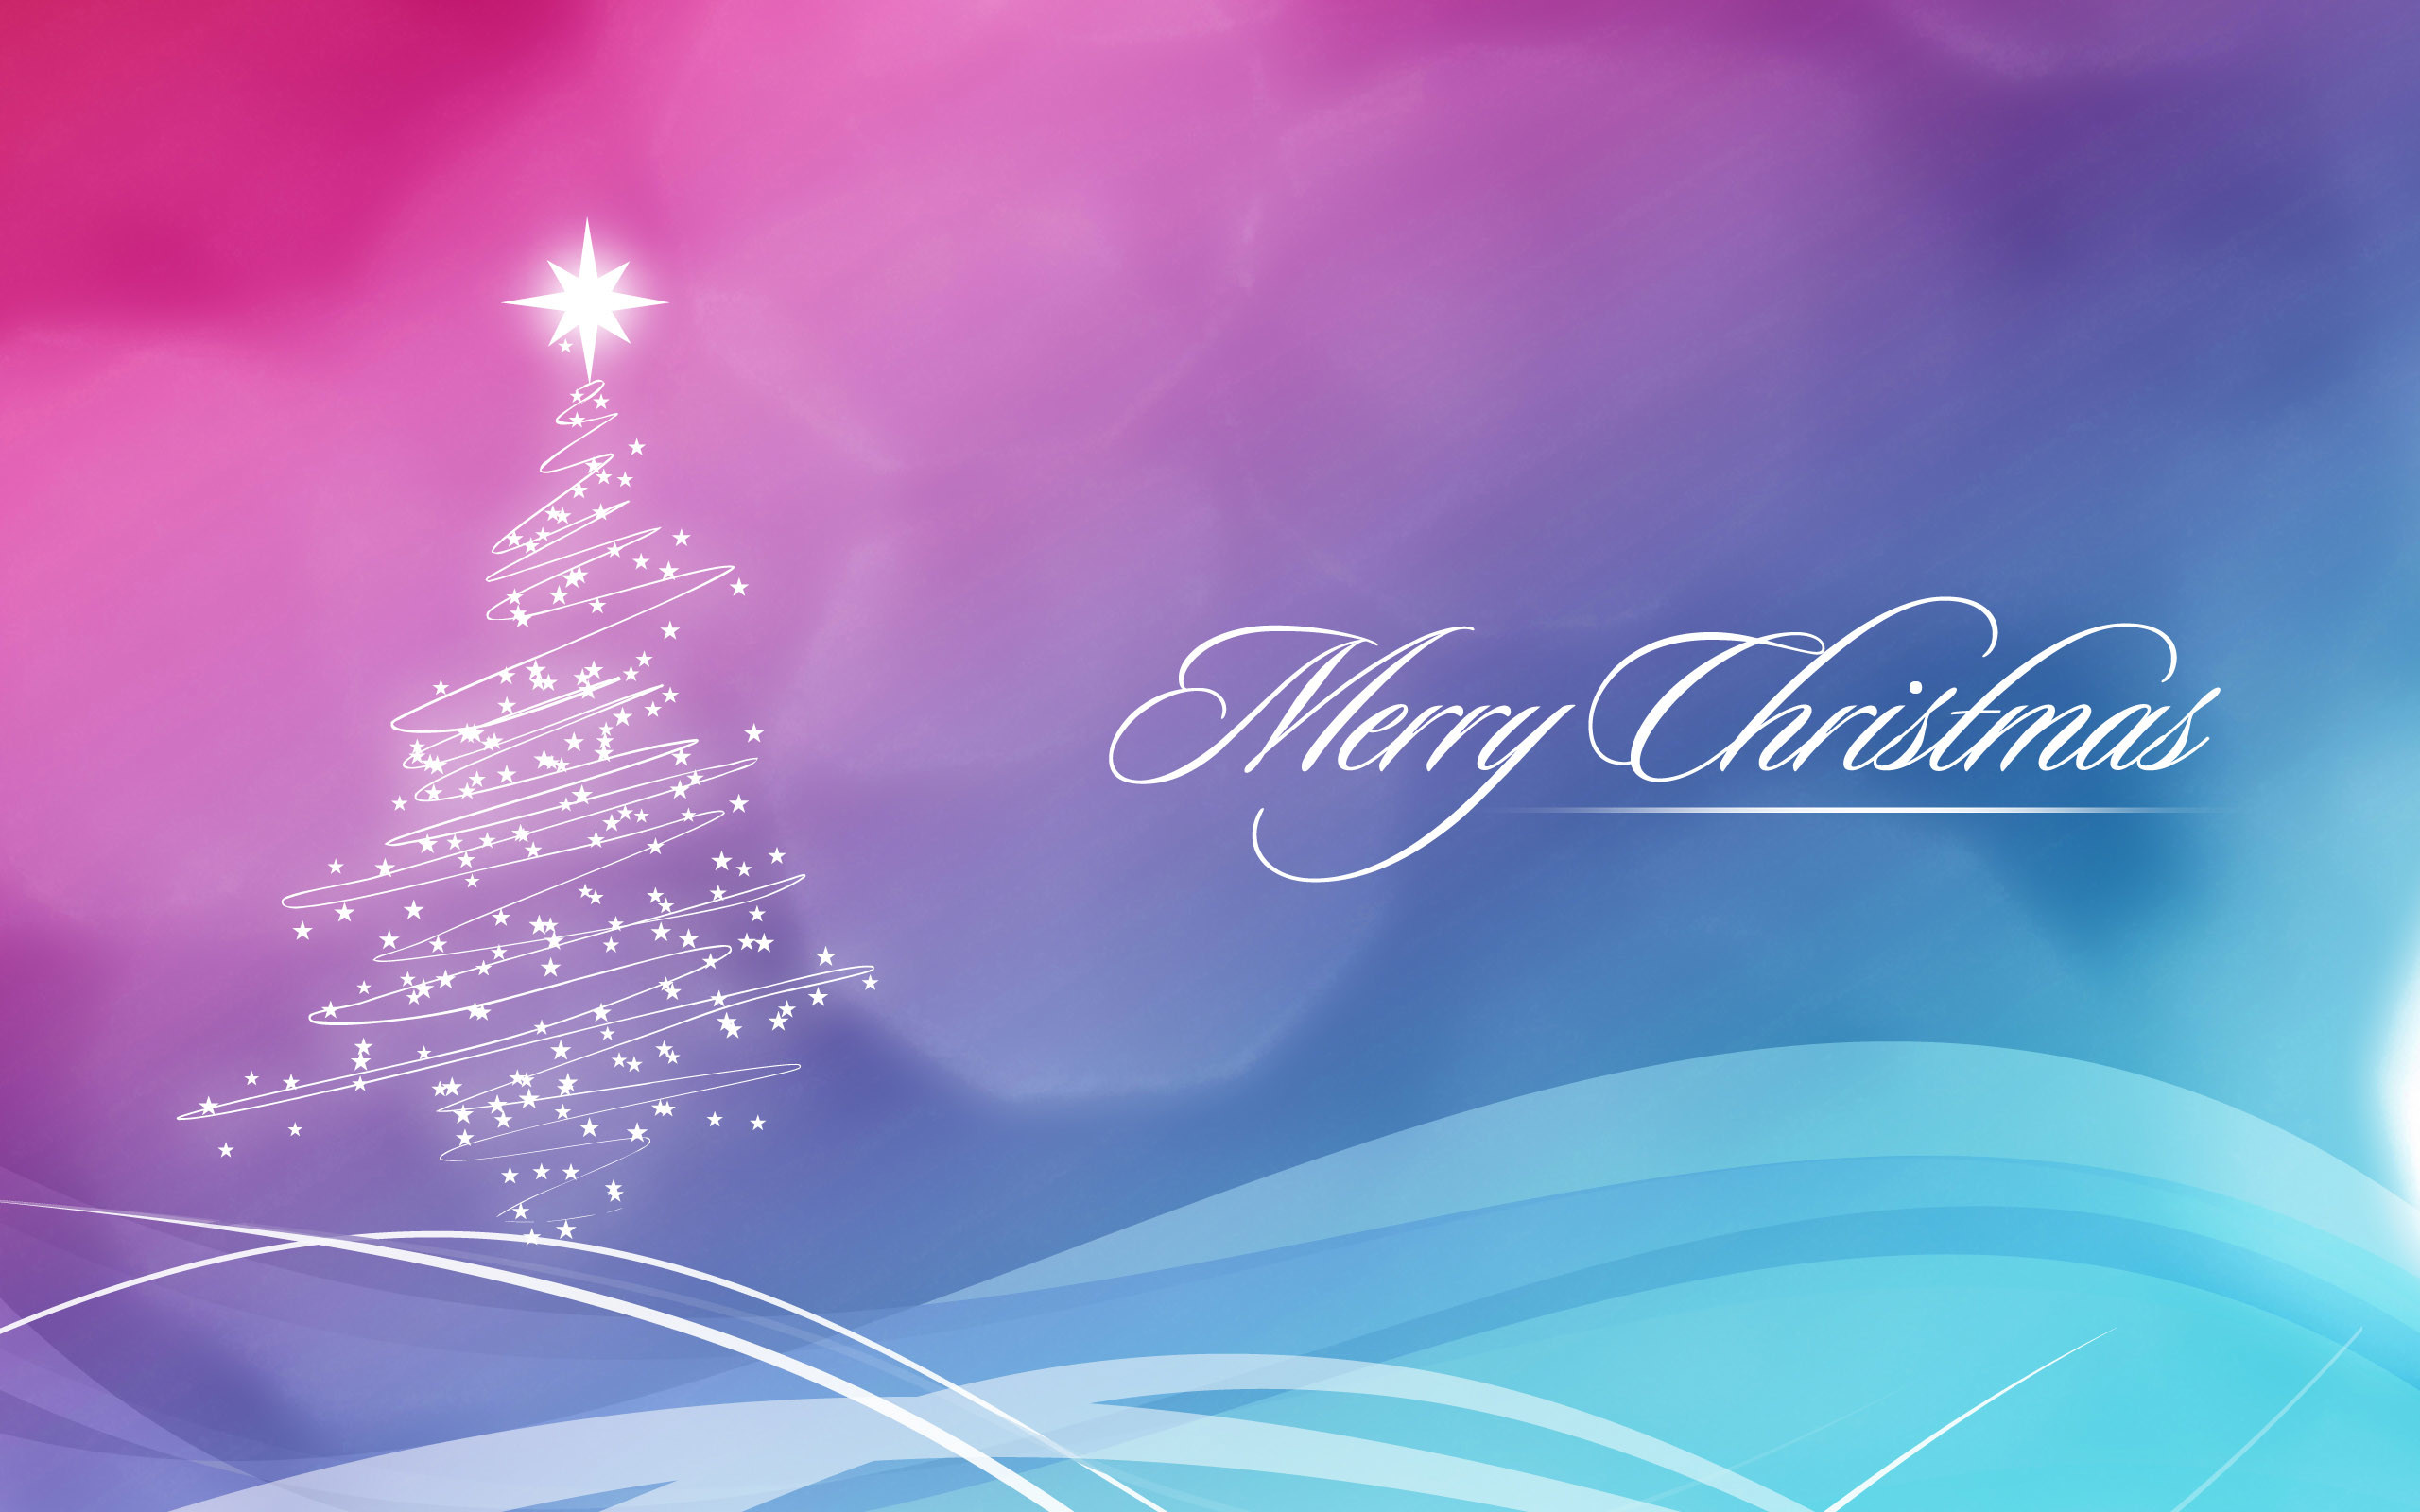 … merry, christmas powerpoint background free powerpoint background